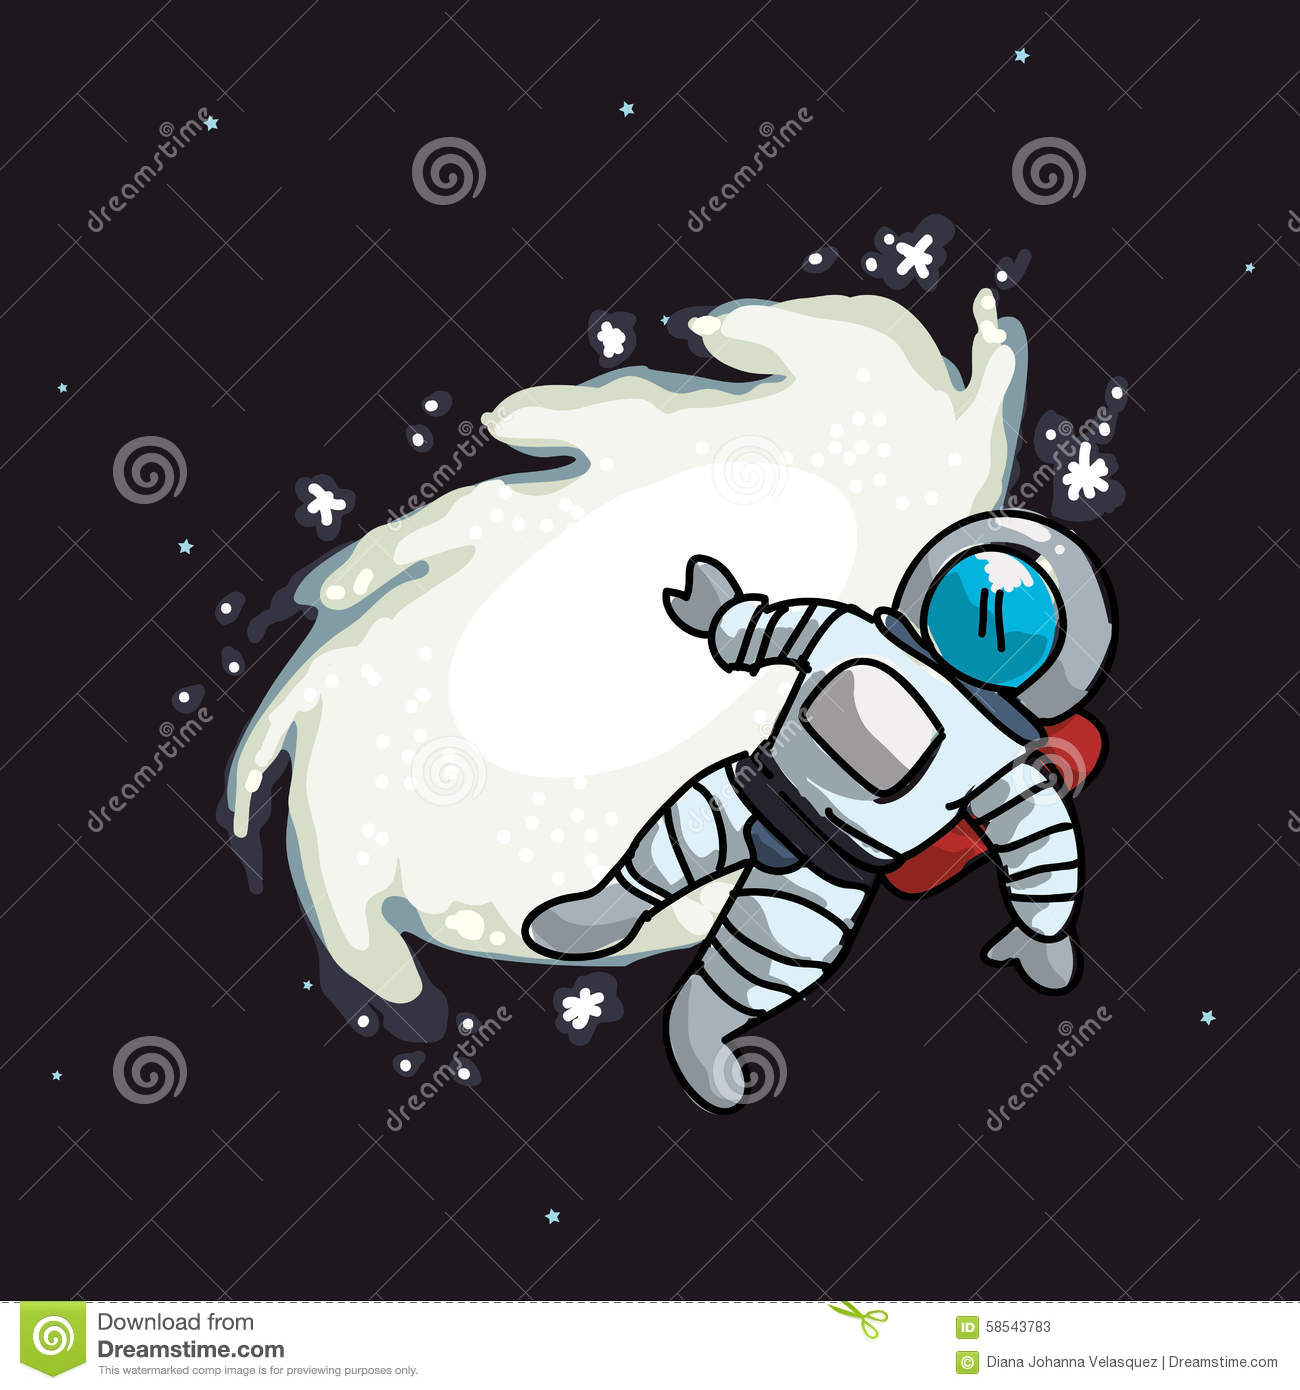 astronaut design - photo #39